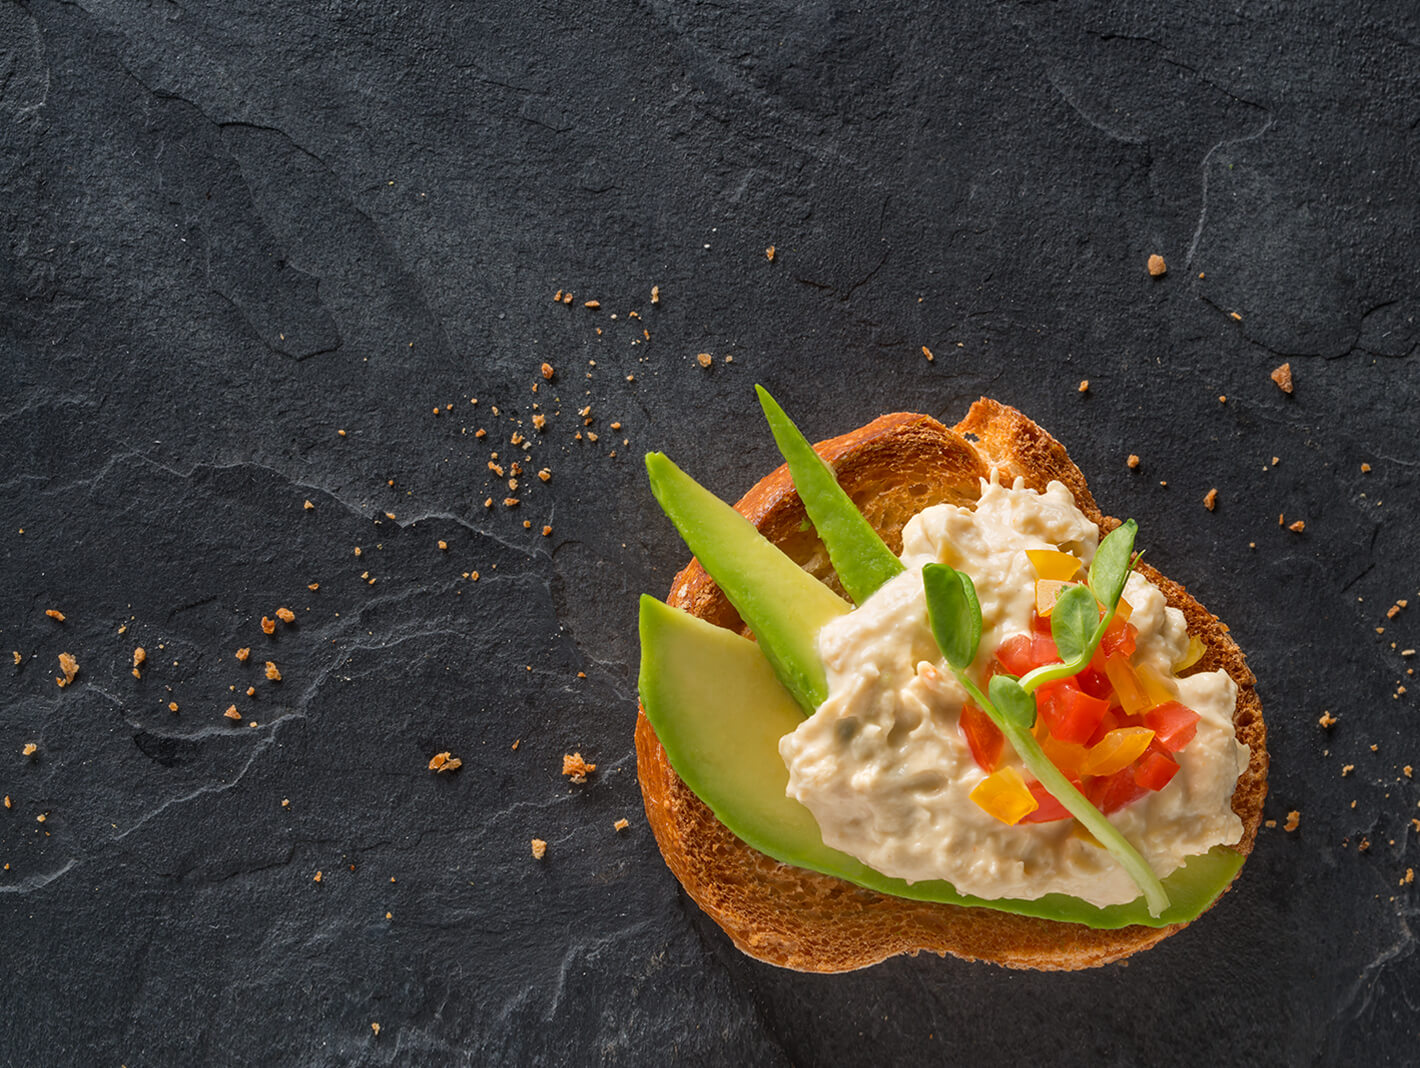 True Blue Seafood Dips, Arial photo of Prawn Avocado gourmet dip on a slice of crusty bread with sliced Avocado and diced Cucumber, set on a black slate background.